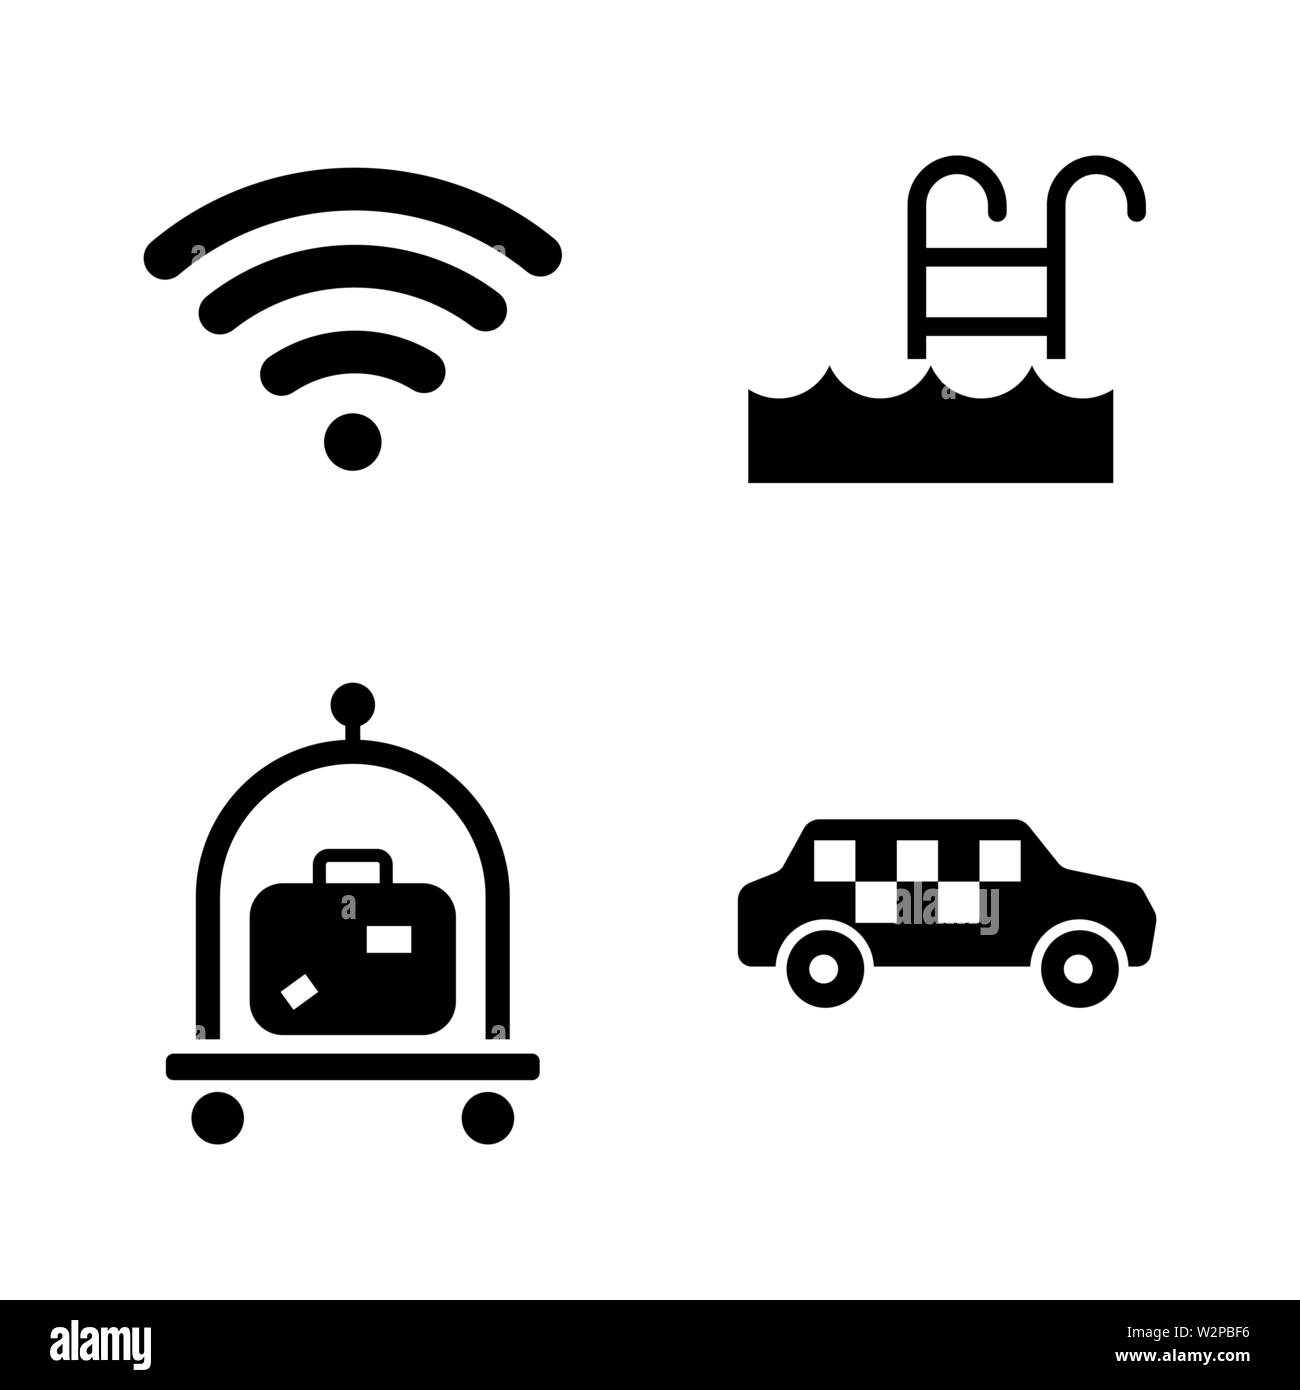 Hotel Service. Simple Related Vector Icons Set for Video, Mobile Apps, Web Sites, Print Projects and Your Design. Black Flat Illustration on White Bac - Stock Image